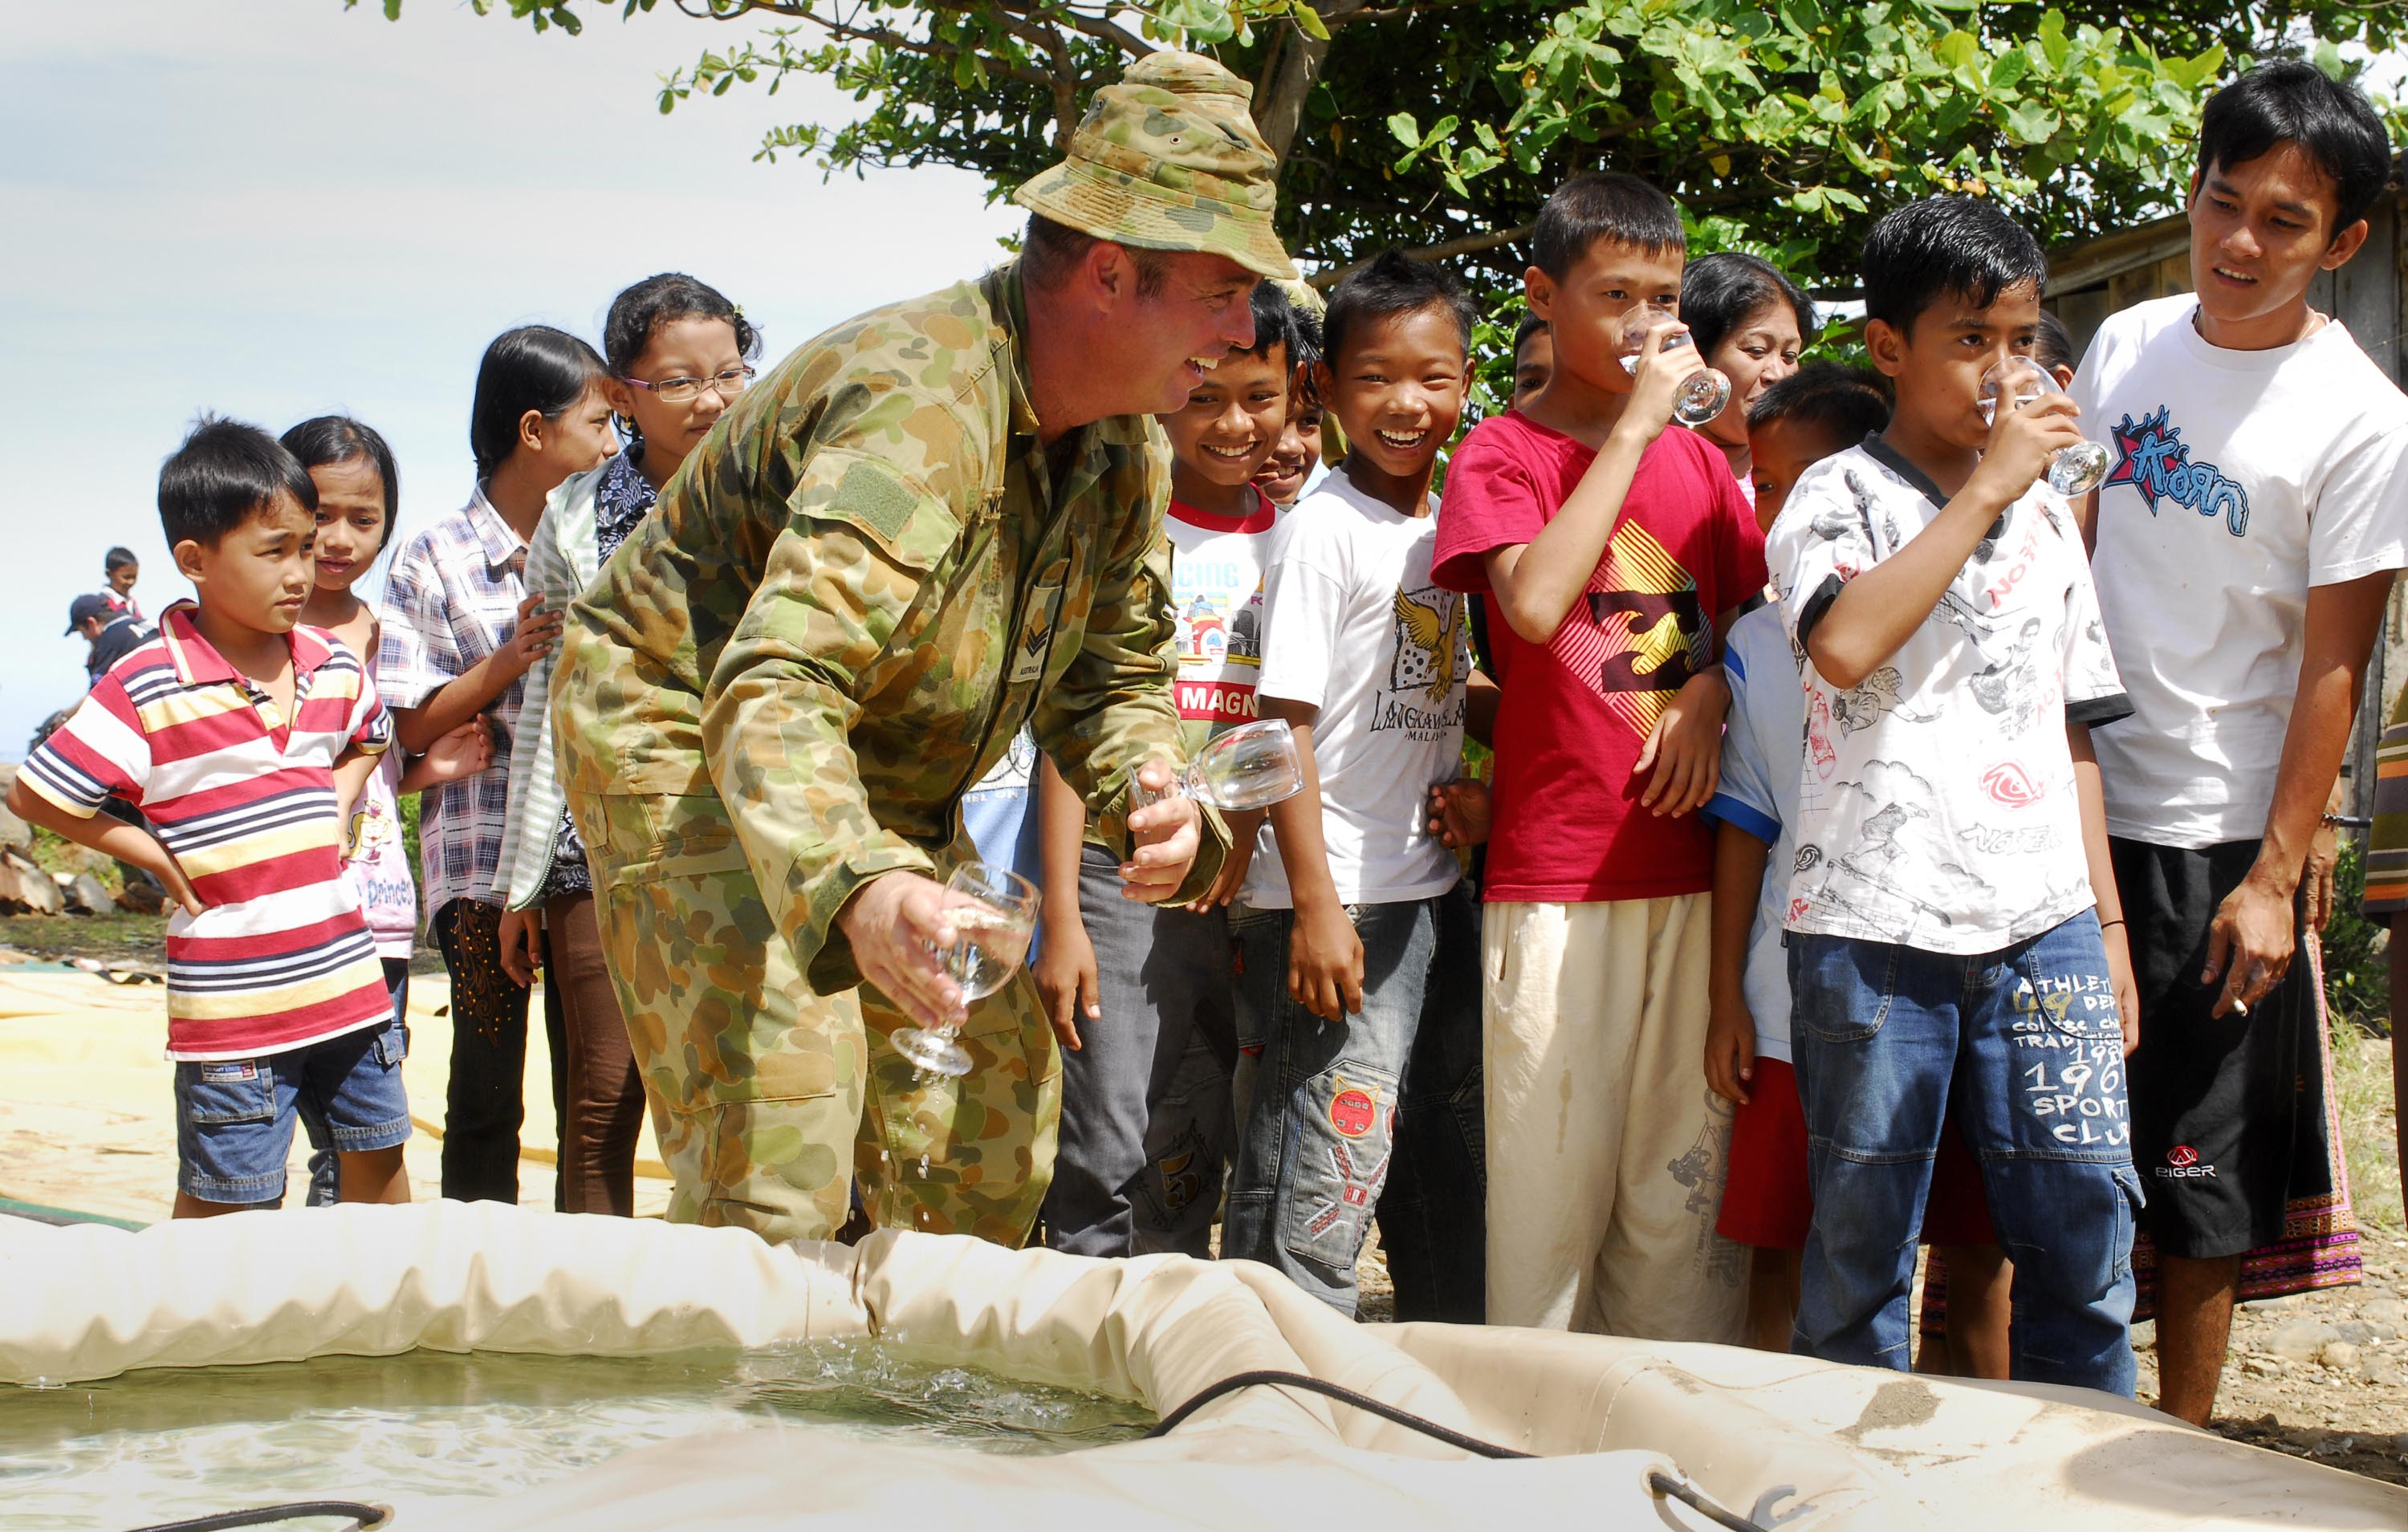 International aid provided clean water after villages in Padang, Indonesia were struck by a devastating earthquake. Photo by the Australian Defence Force